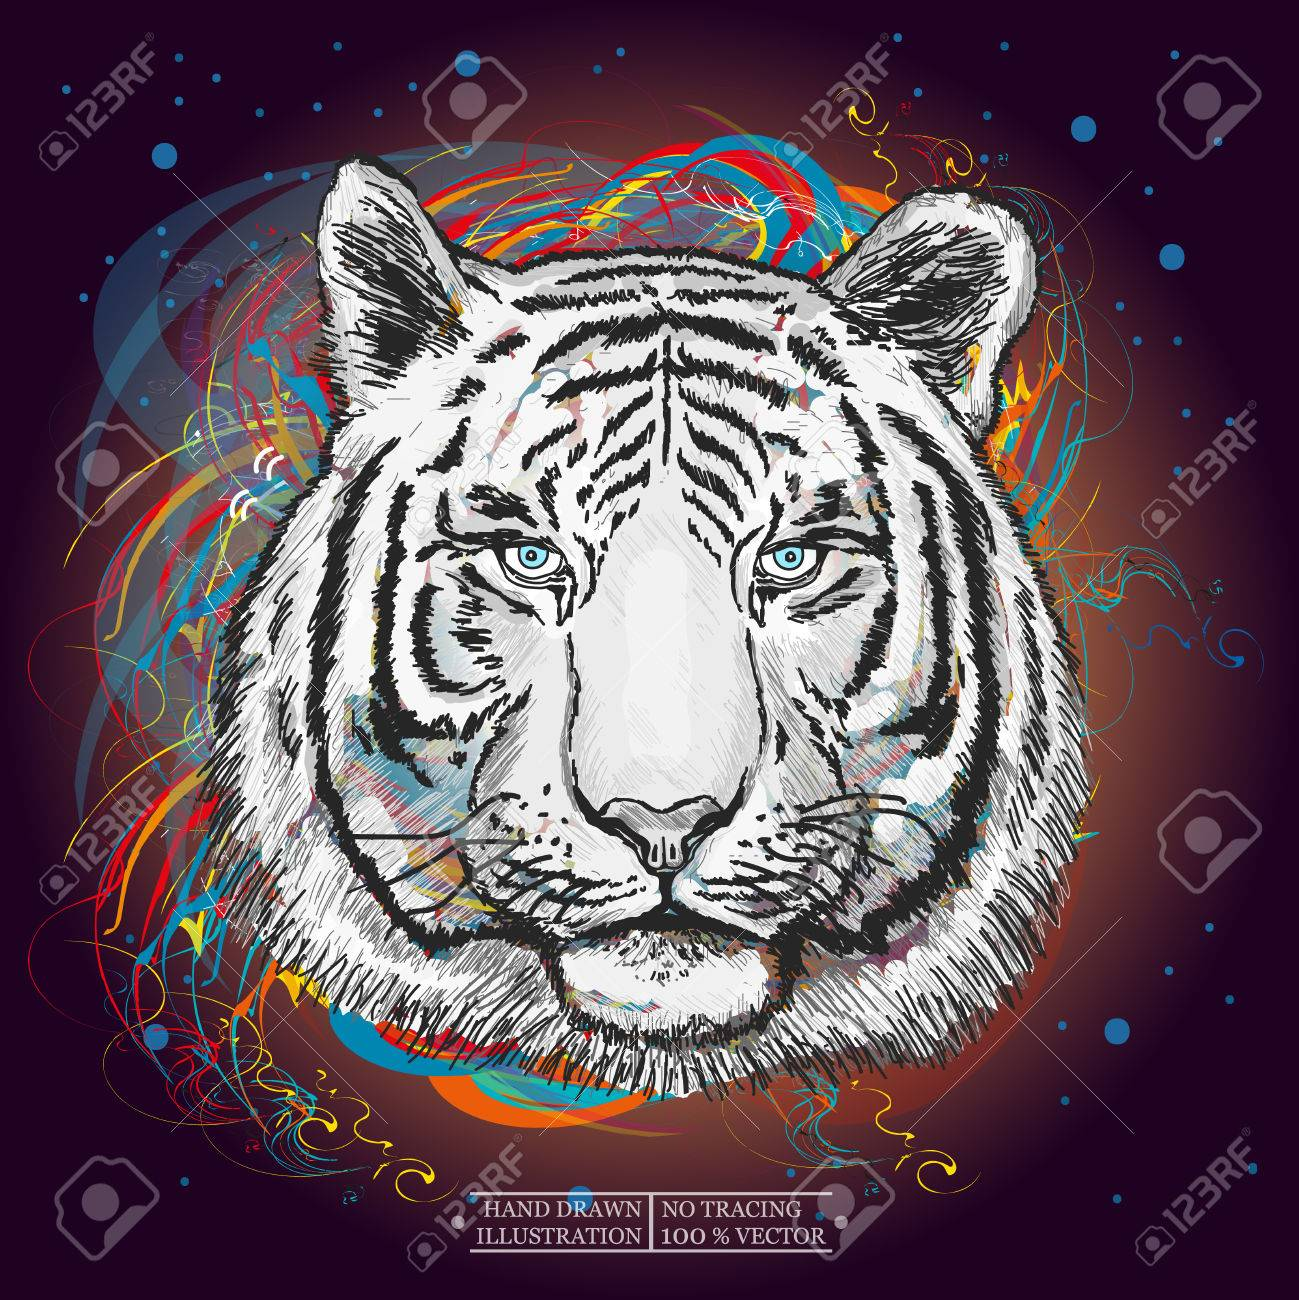 White tiger in outer space art print hand drawn animal illustration - 57464511